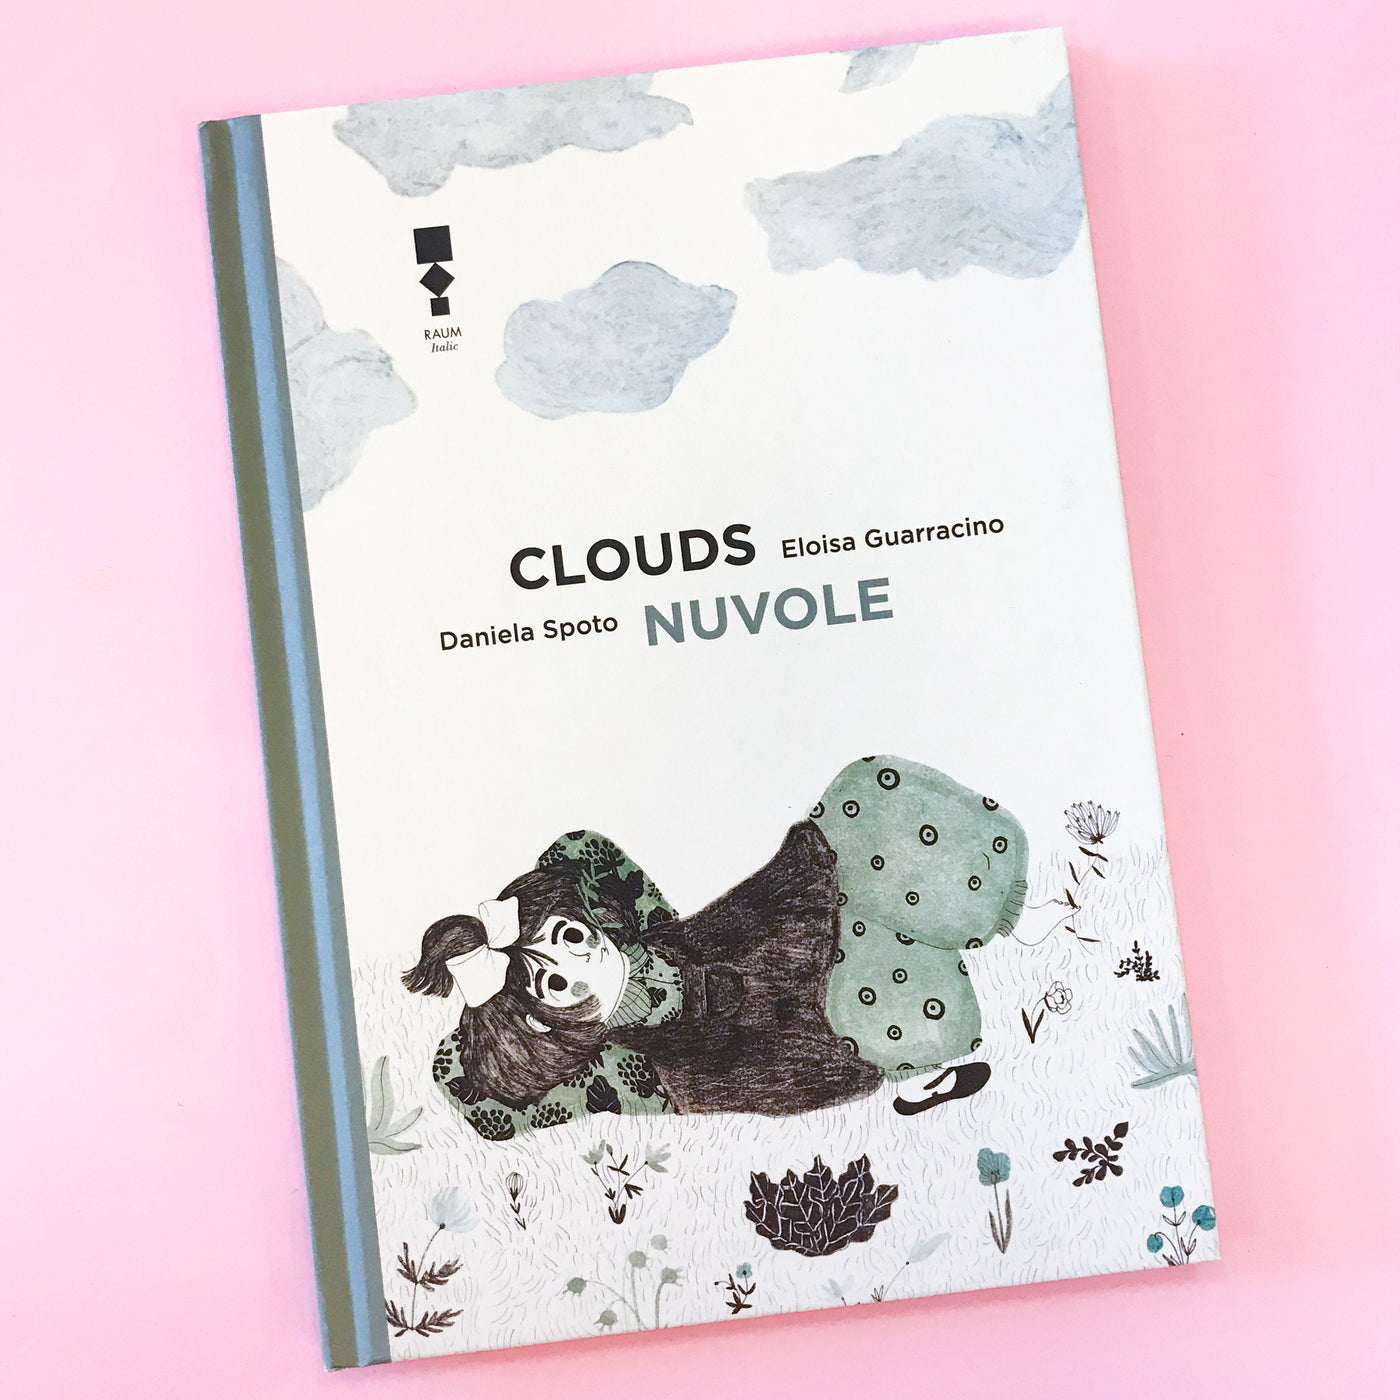 Clouds by Eloisa Guarracino and Illustrations by Daniela Spoto